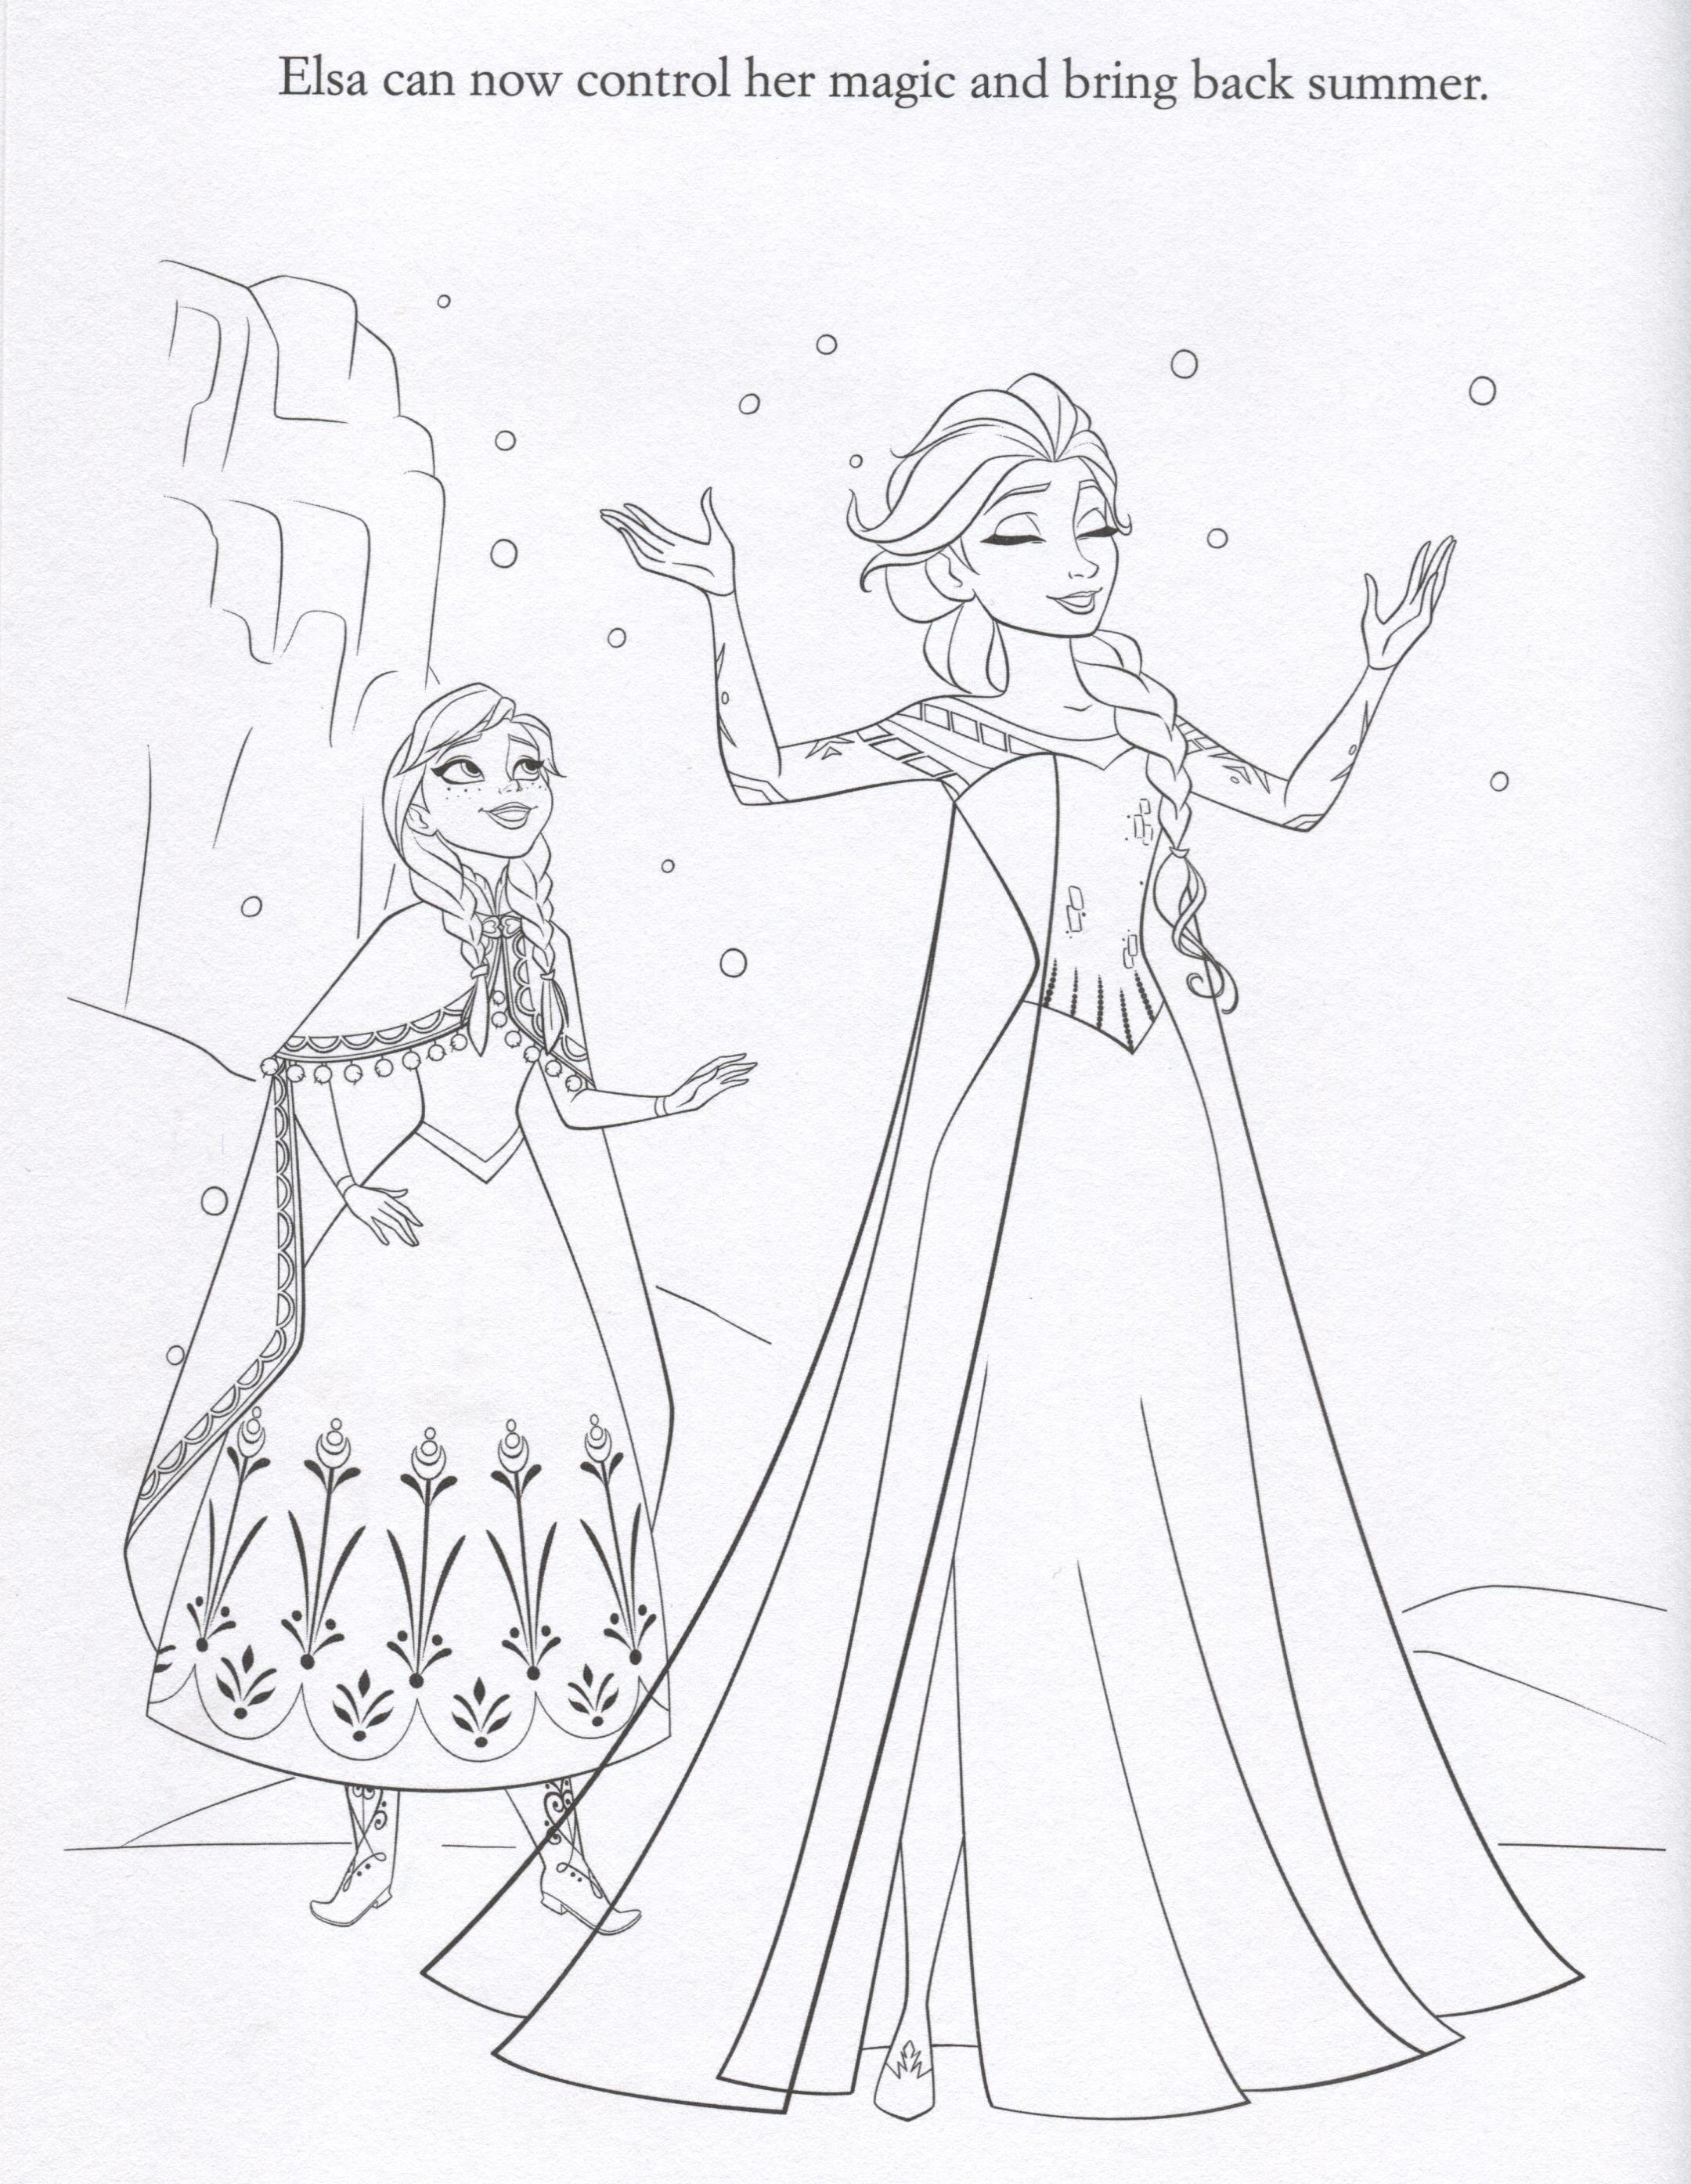 Frozen 2 coloring pages - Coloring Sheets On Pinterest Frozen Pages 1944x2617 Free